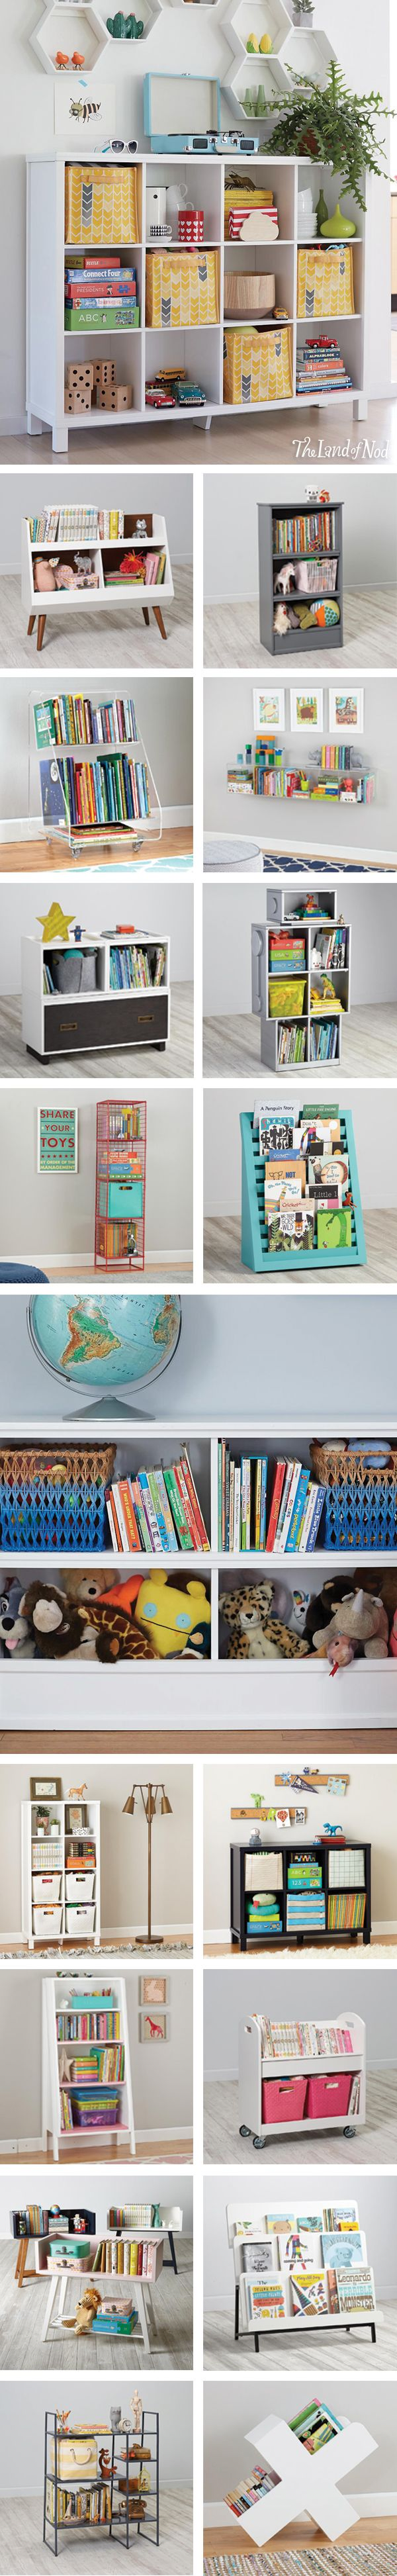 kids organization furniture. Beautiful Organization Kids Bookcases And Bookshelves In Organization Furniture